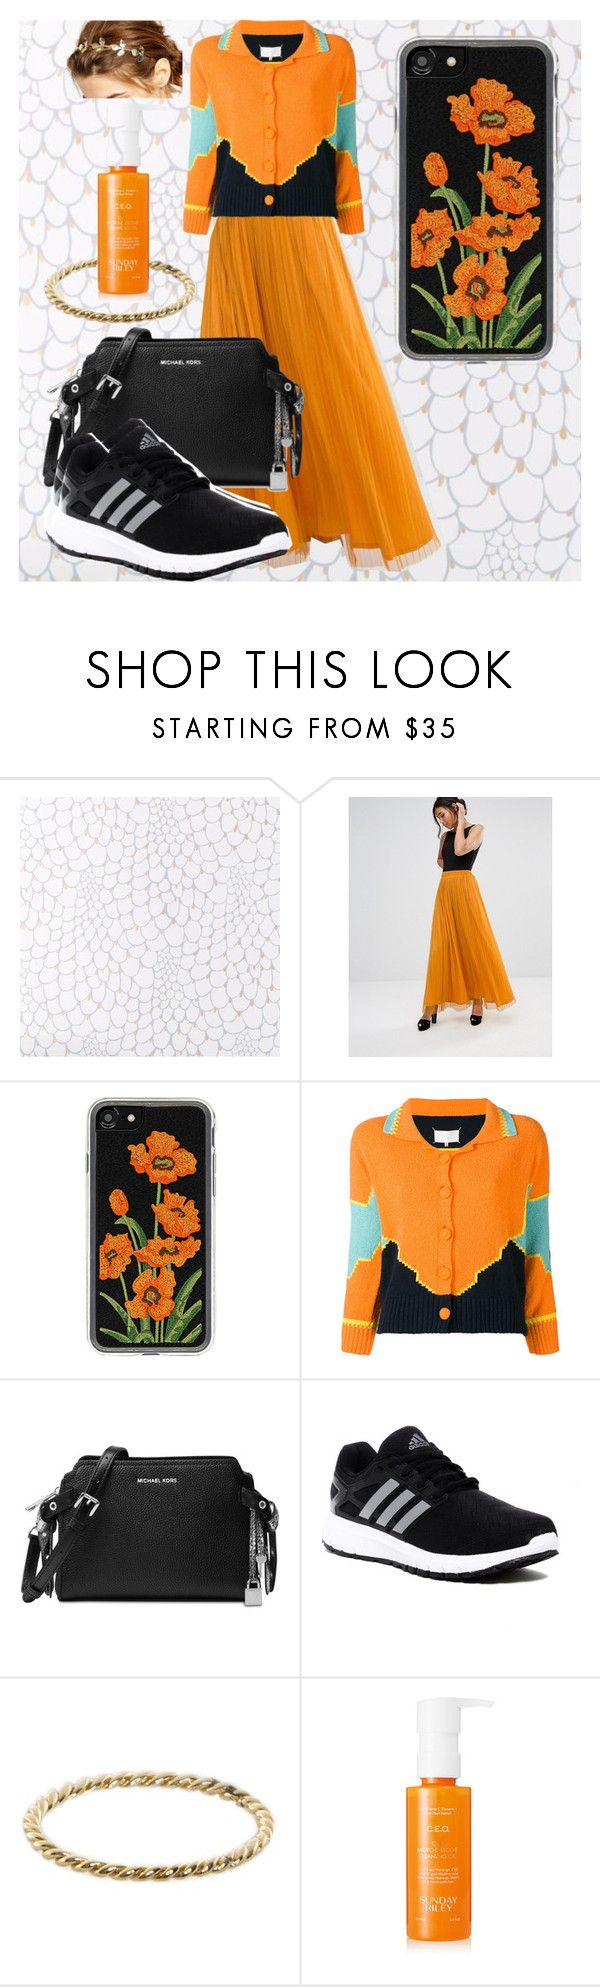 """""""Jump, jump, jump!"""" by ice78 ❤ liked on Polyvore featuring Boohoo, Zero Gravity, Maison Margiela, Michael Kors, adidas, Luna Skye, Sunday Riley and WithChic"""